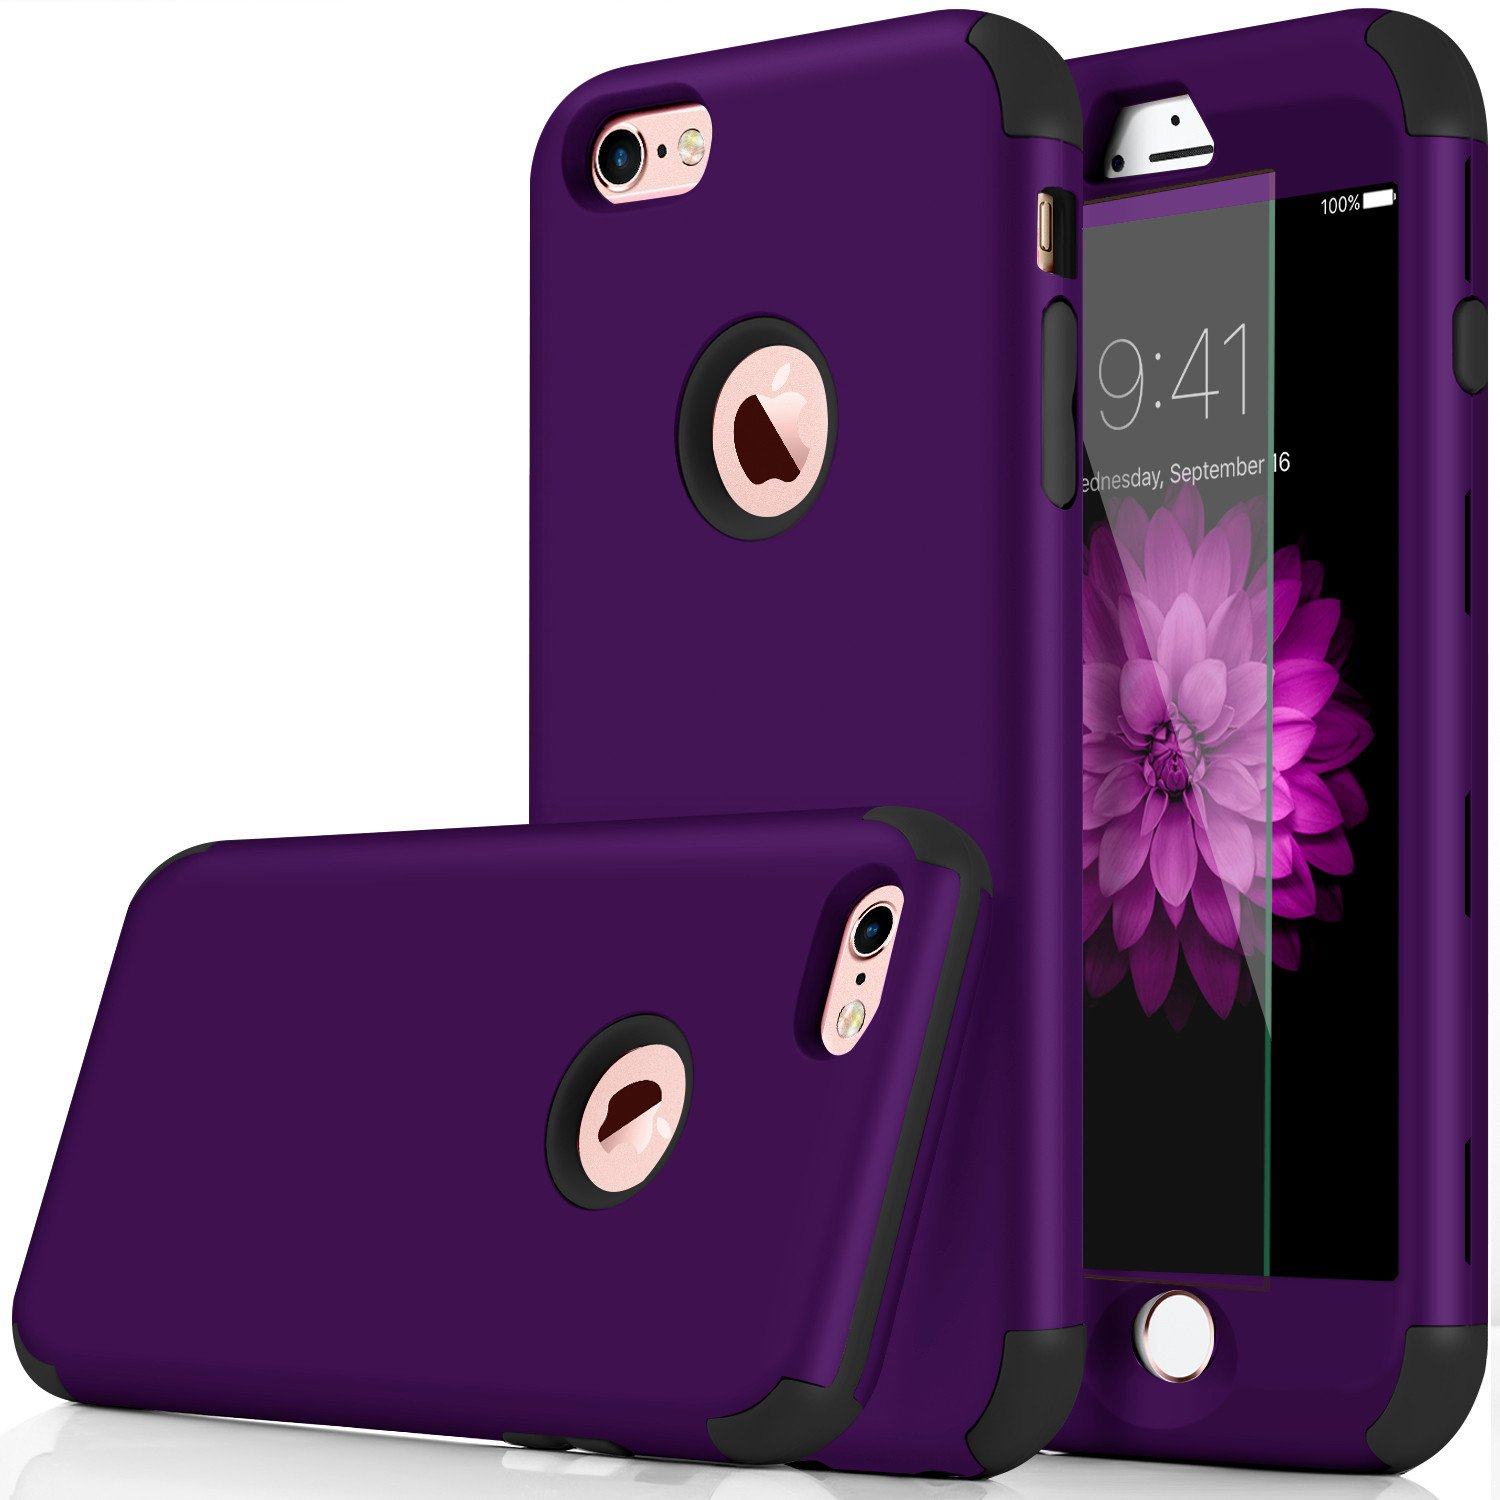 iPhone 7 Case, Qusum 3-in-1 Shockproof Full Body Coverage Protection Hard Slim iPhone 7 Case with Tempered Glass Screen Protector for Apple iPhone 7 4.7' Inch (Purple)